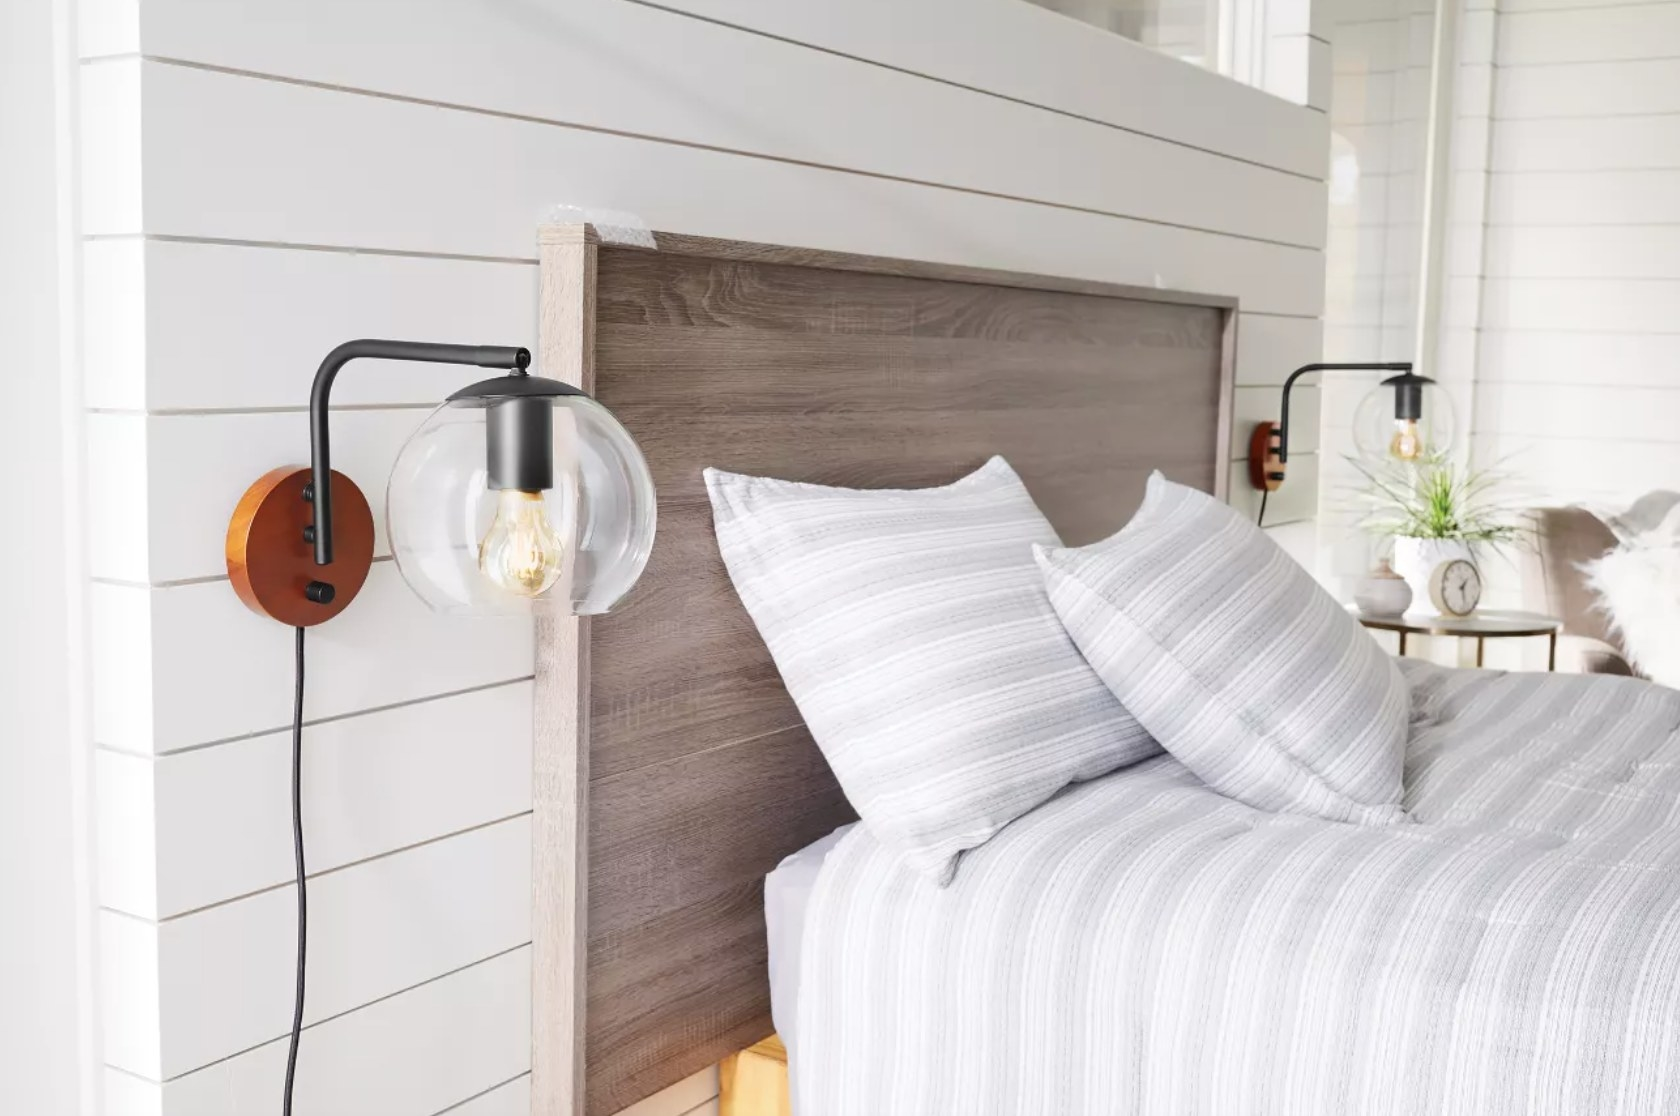 A wall sconce with wooden base, black metal arm, and round glass shade